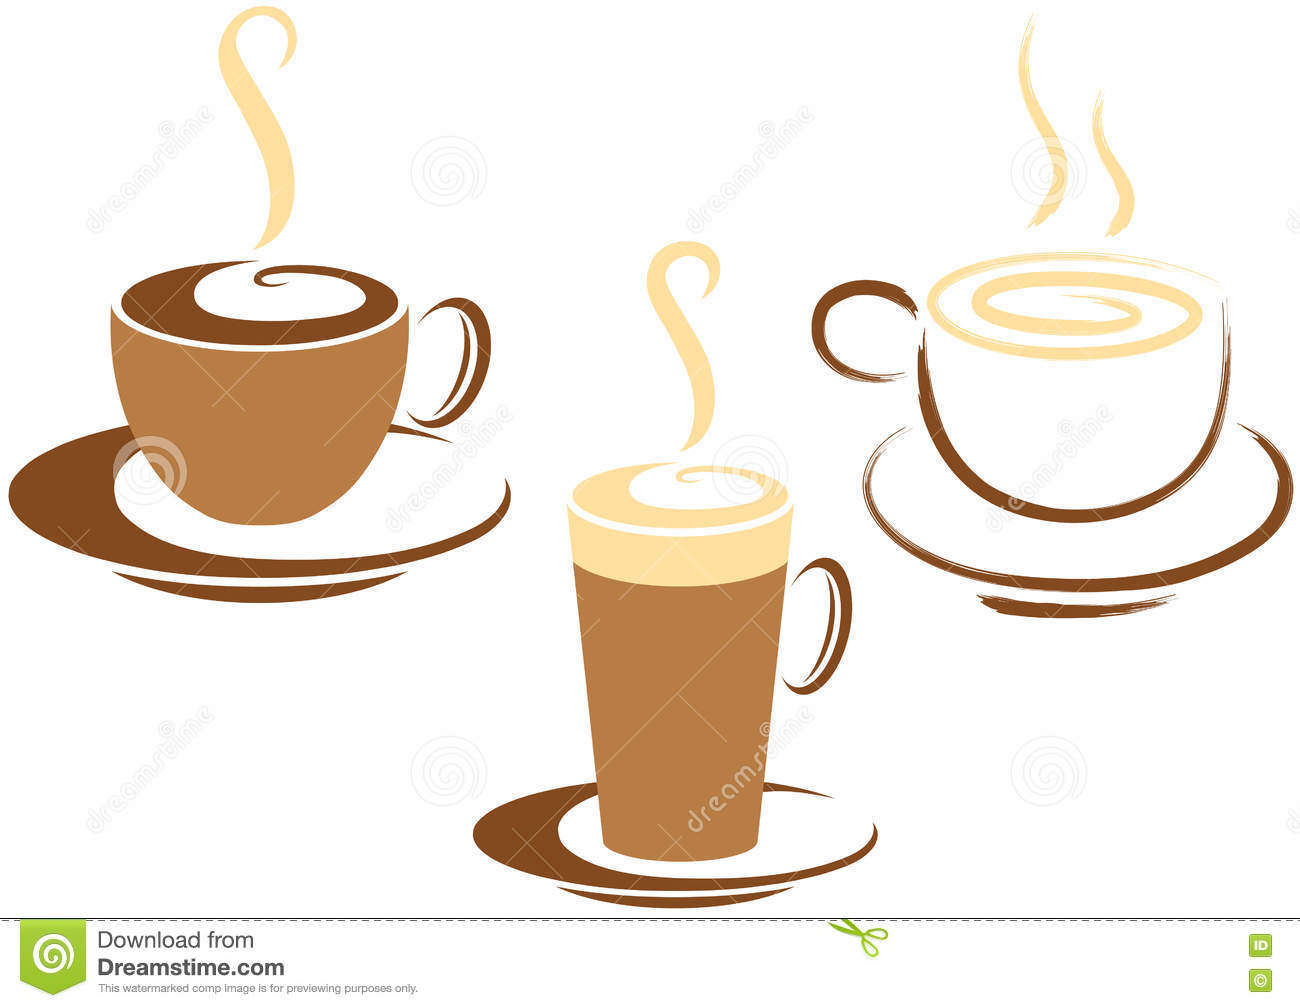 Coffee Cup Graphics Stock Vector. Illustration Of Crockery